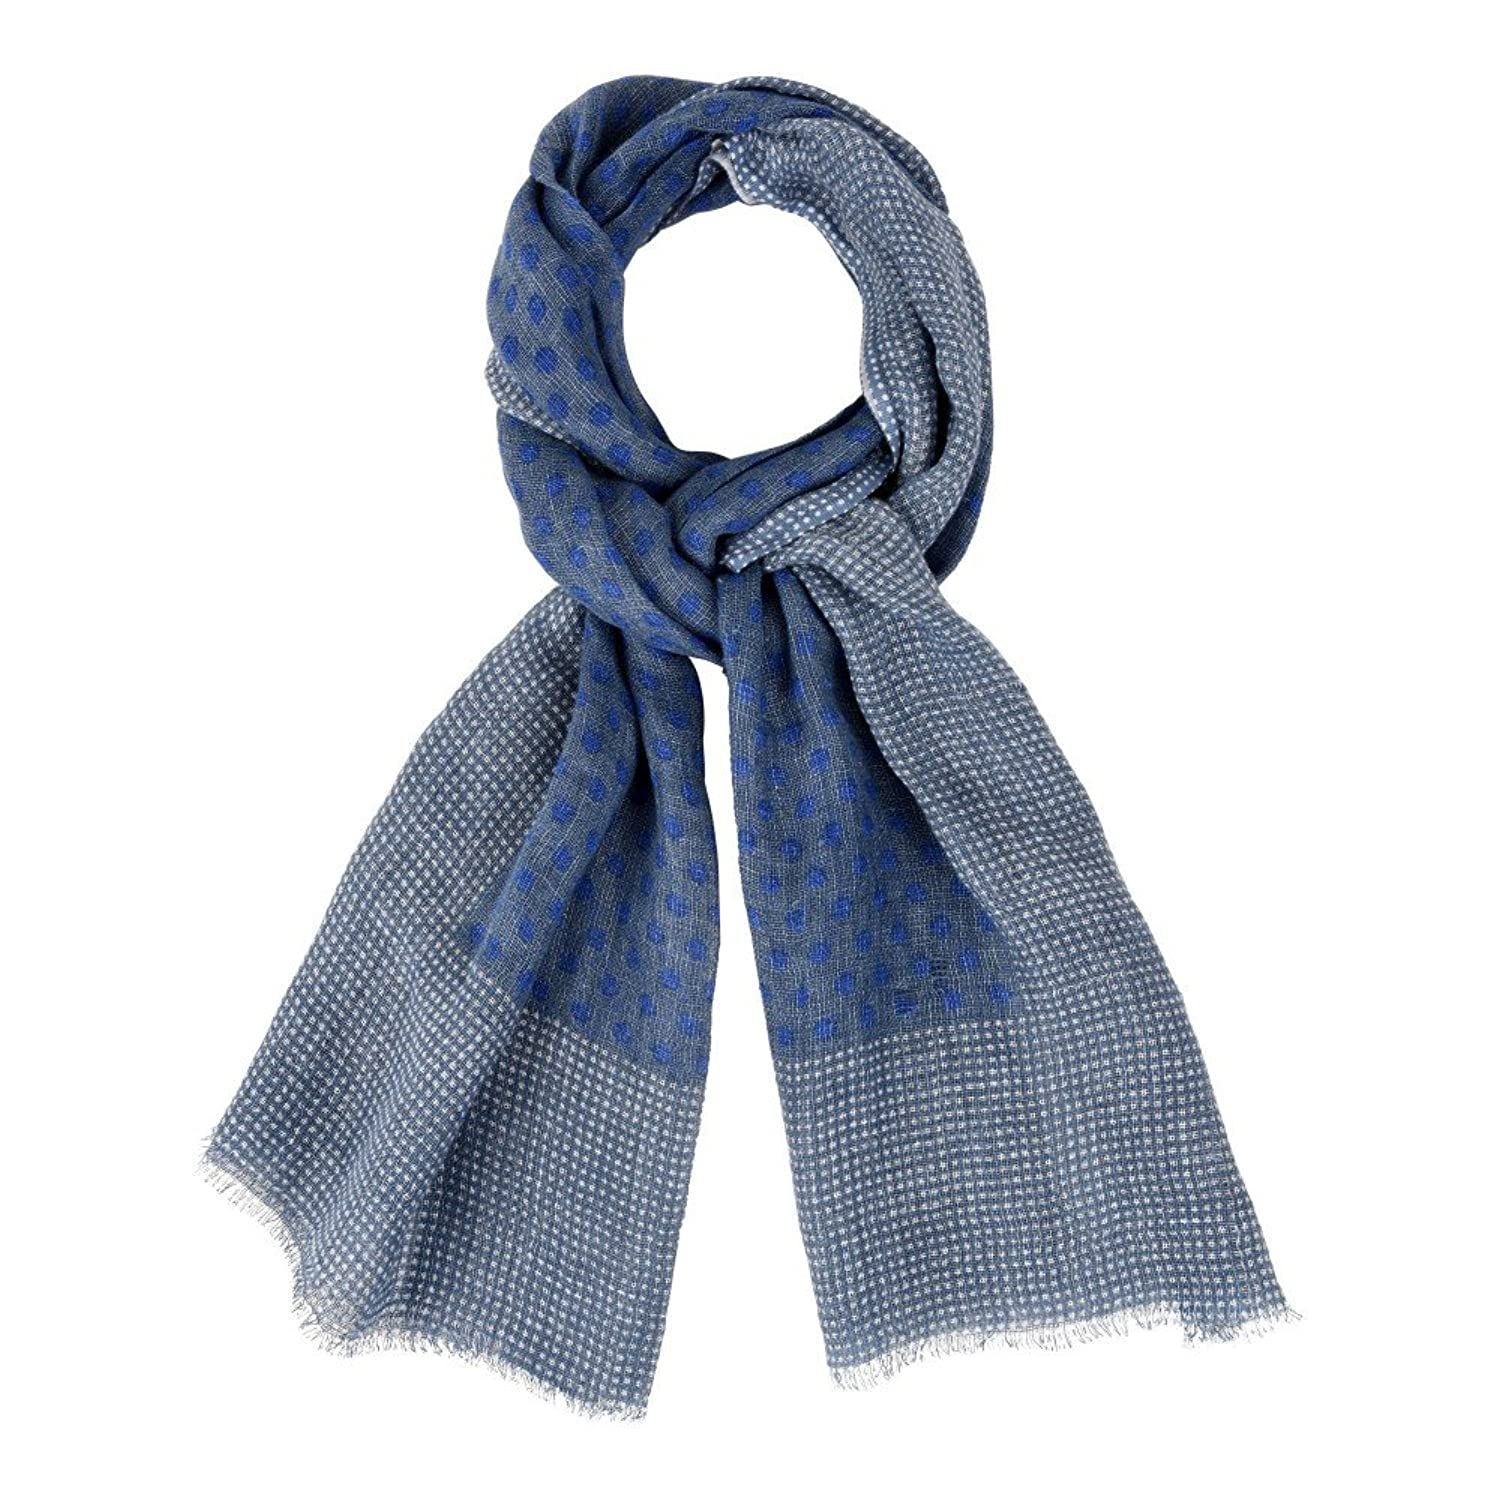 Unisex Scarf 100% Linen Blue and Blue Dots - White Edging